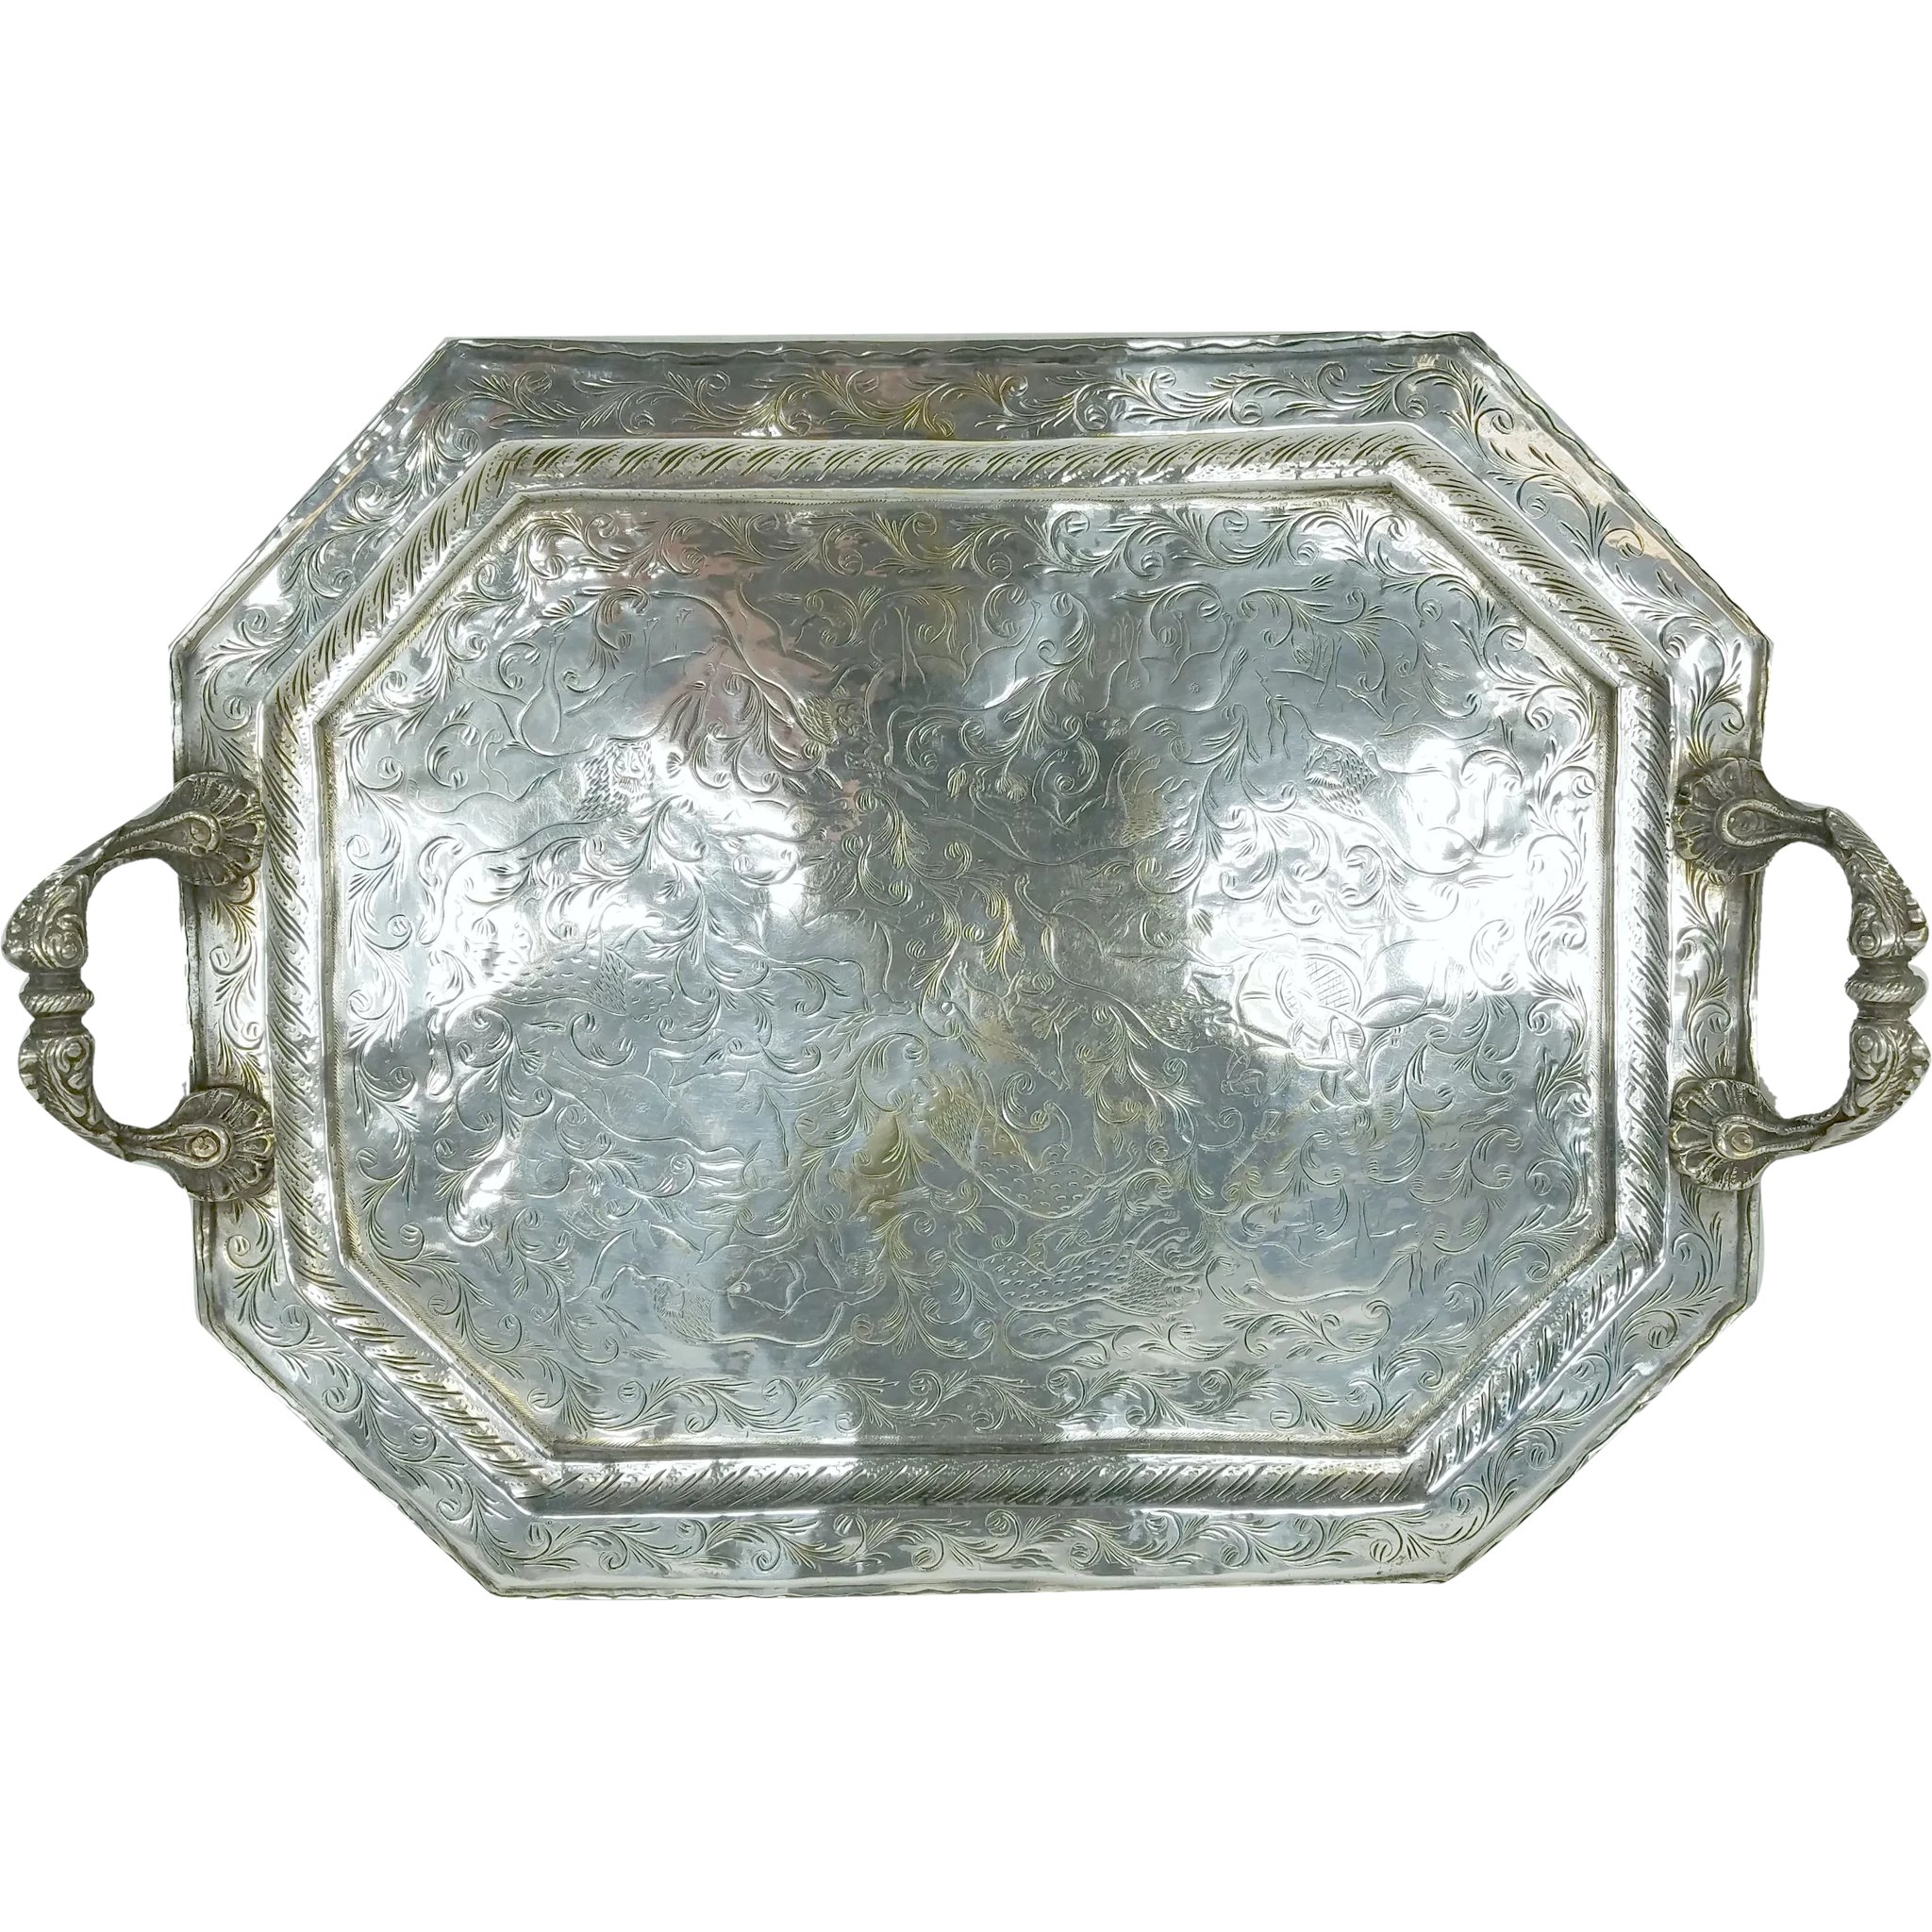 Antique Indian Colonial Silver Plate Tray With Engraved Animal Scenes Mason Antiques Ruby Lane